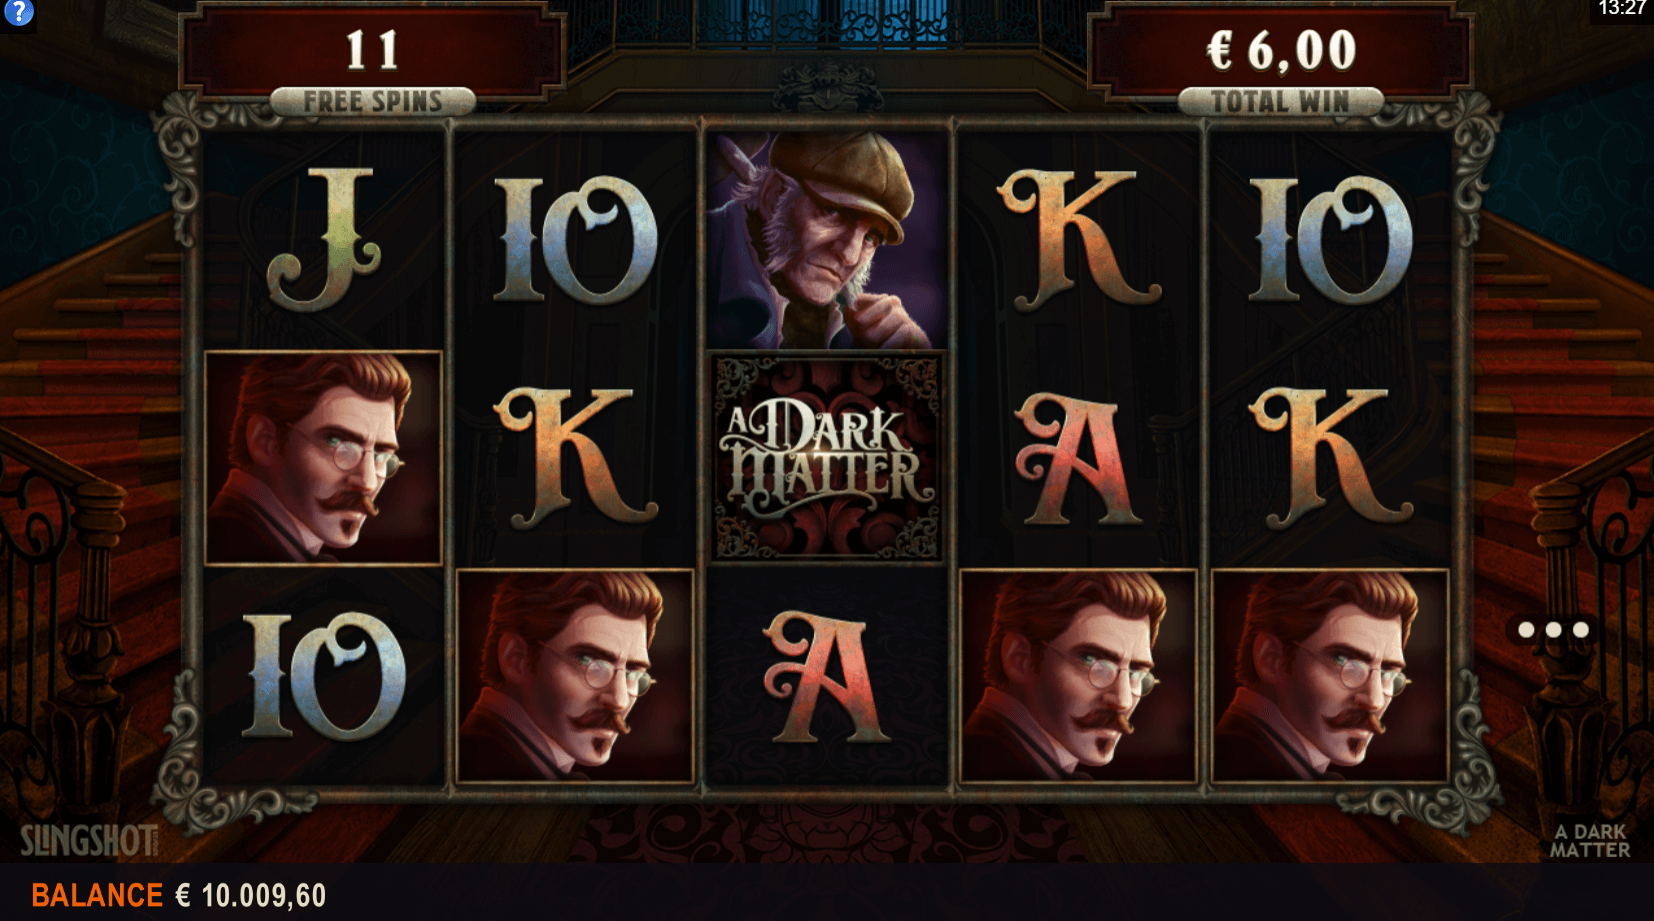 Paytable from Thor's Lightning slot game at PlayOJO